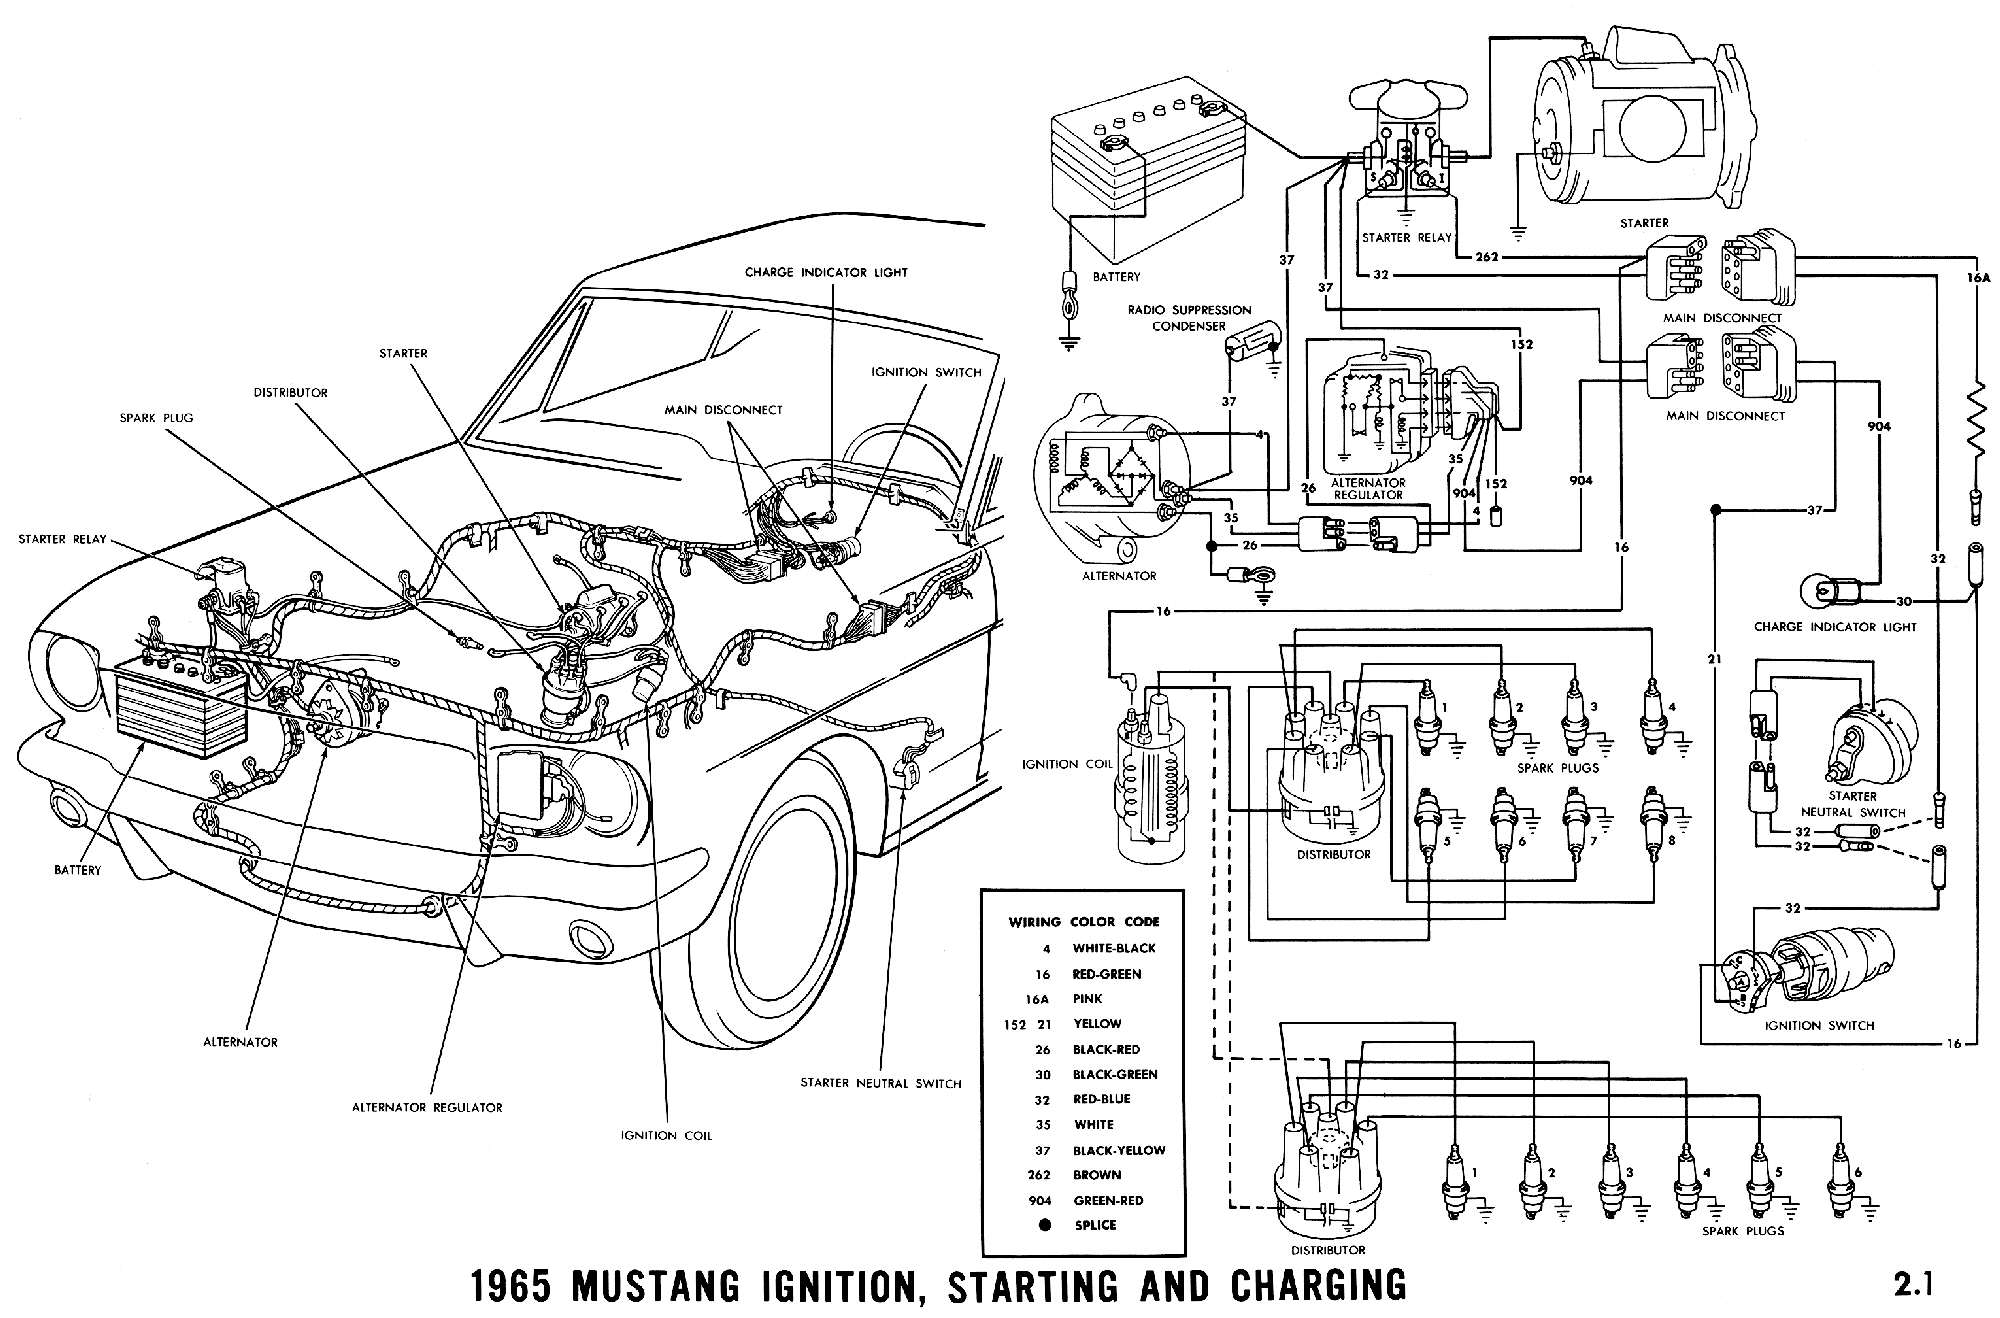 66 Mustang Wiring Harness Diagram | Wiring Diagram